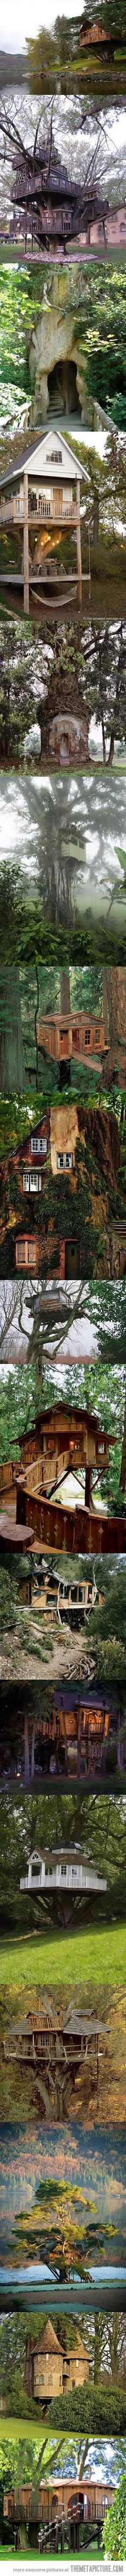 I need a grownup tree house… how fun to vacation in a tree house like one of the nicer ones of these.